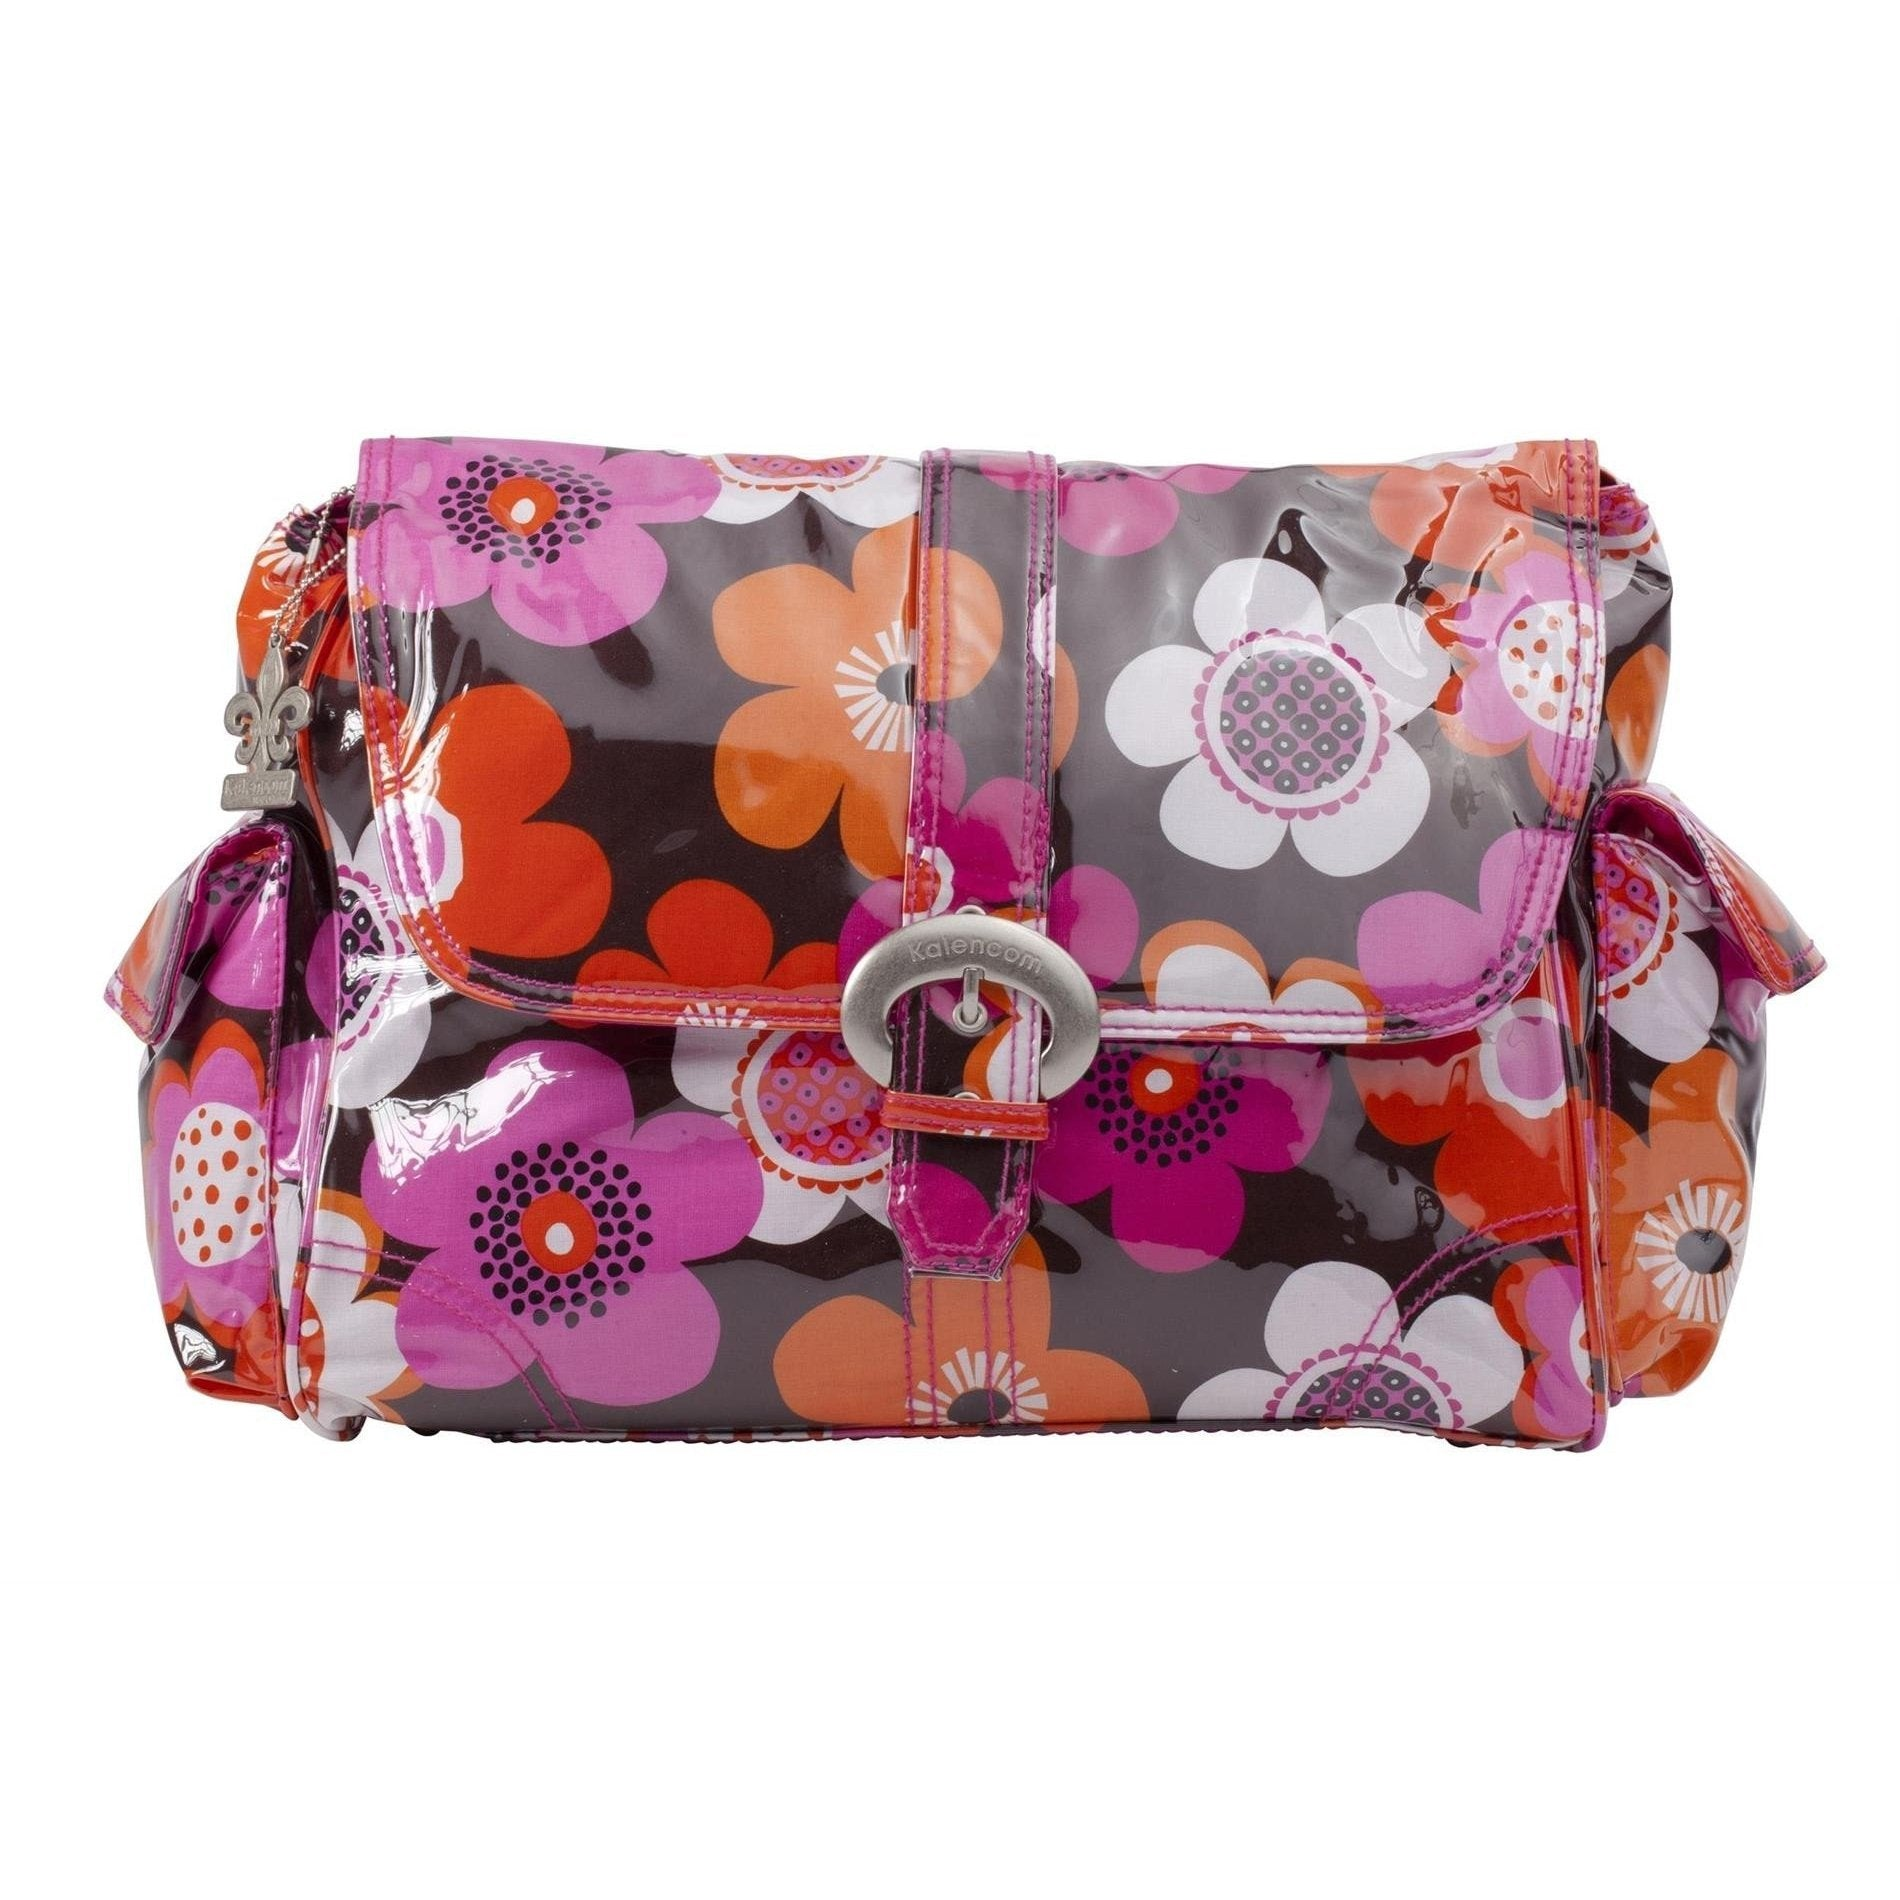 Groovy Laminated Buckle Diaper Bag | Style 2960 - Kalencom-Diaper Bags-Default-Jack and Jill Boutique